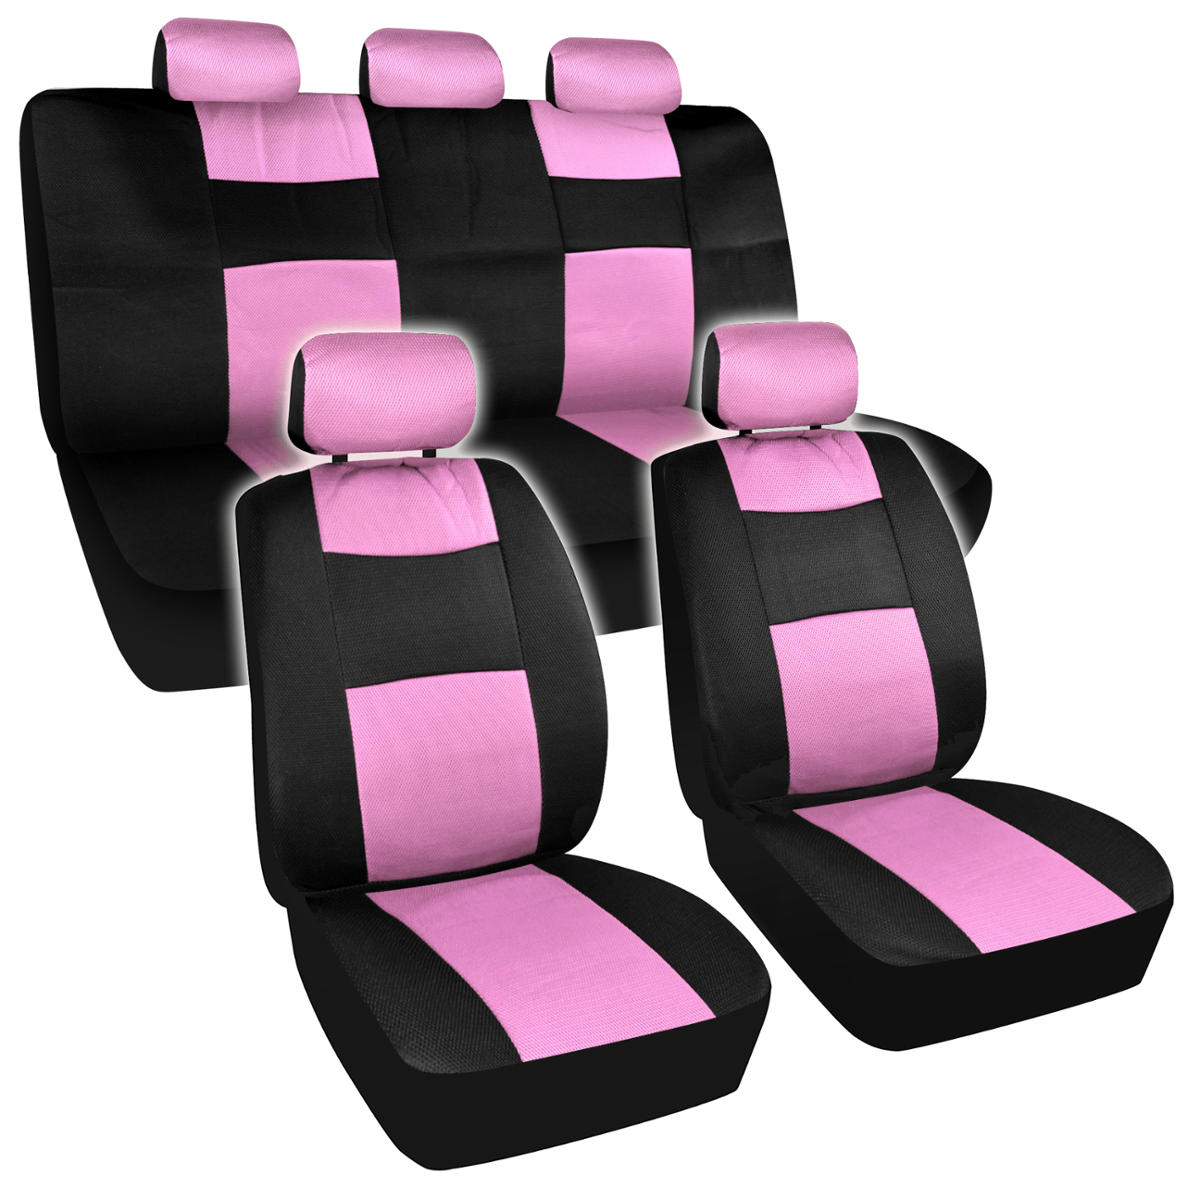 seat covers black and pink mesh cloth polyester 2 color accent set accessories ebay. Black Bedroom Furniture Sets. Home Design Ideas